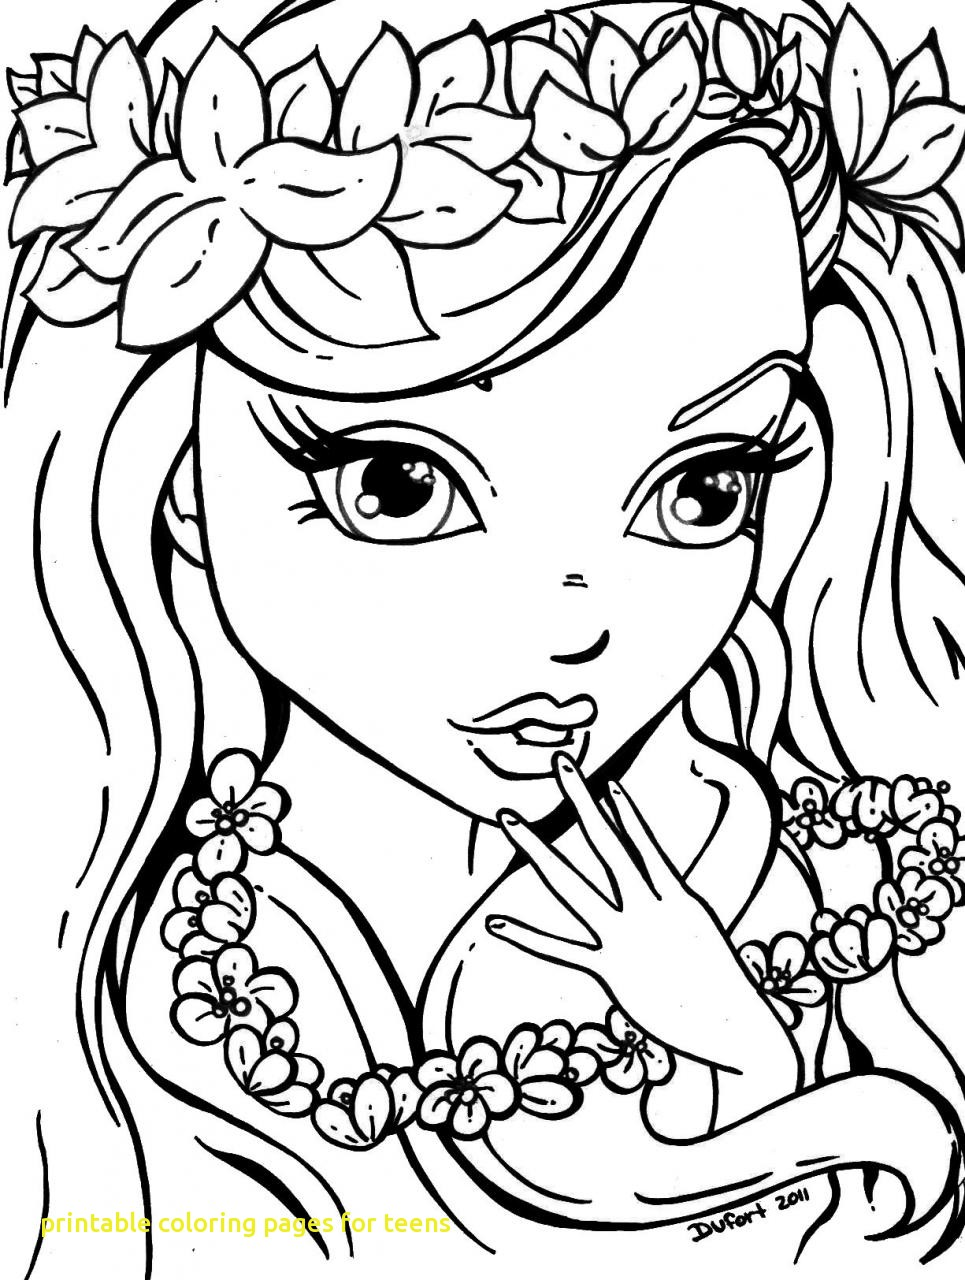 965x1280 Printable Coloring Pages For Teens With Coloring Pages Girls